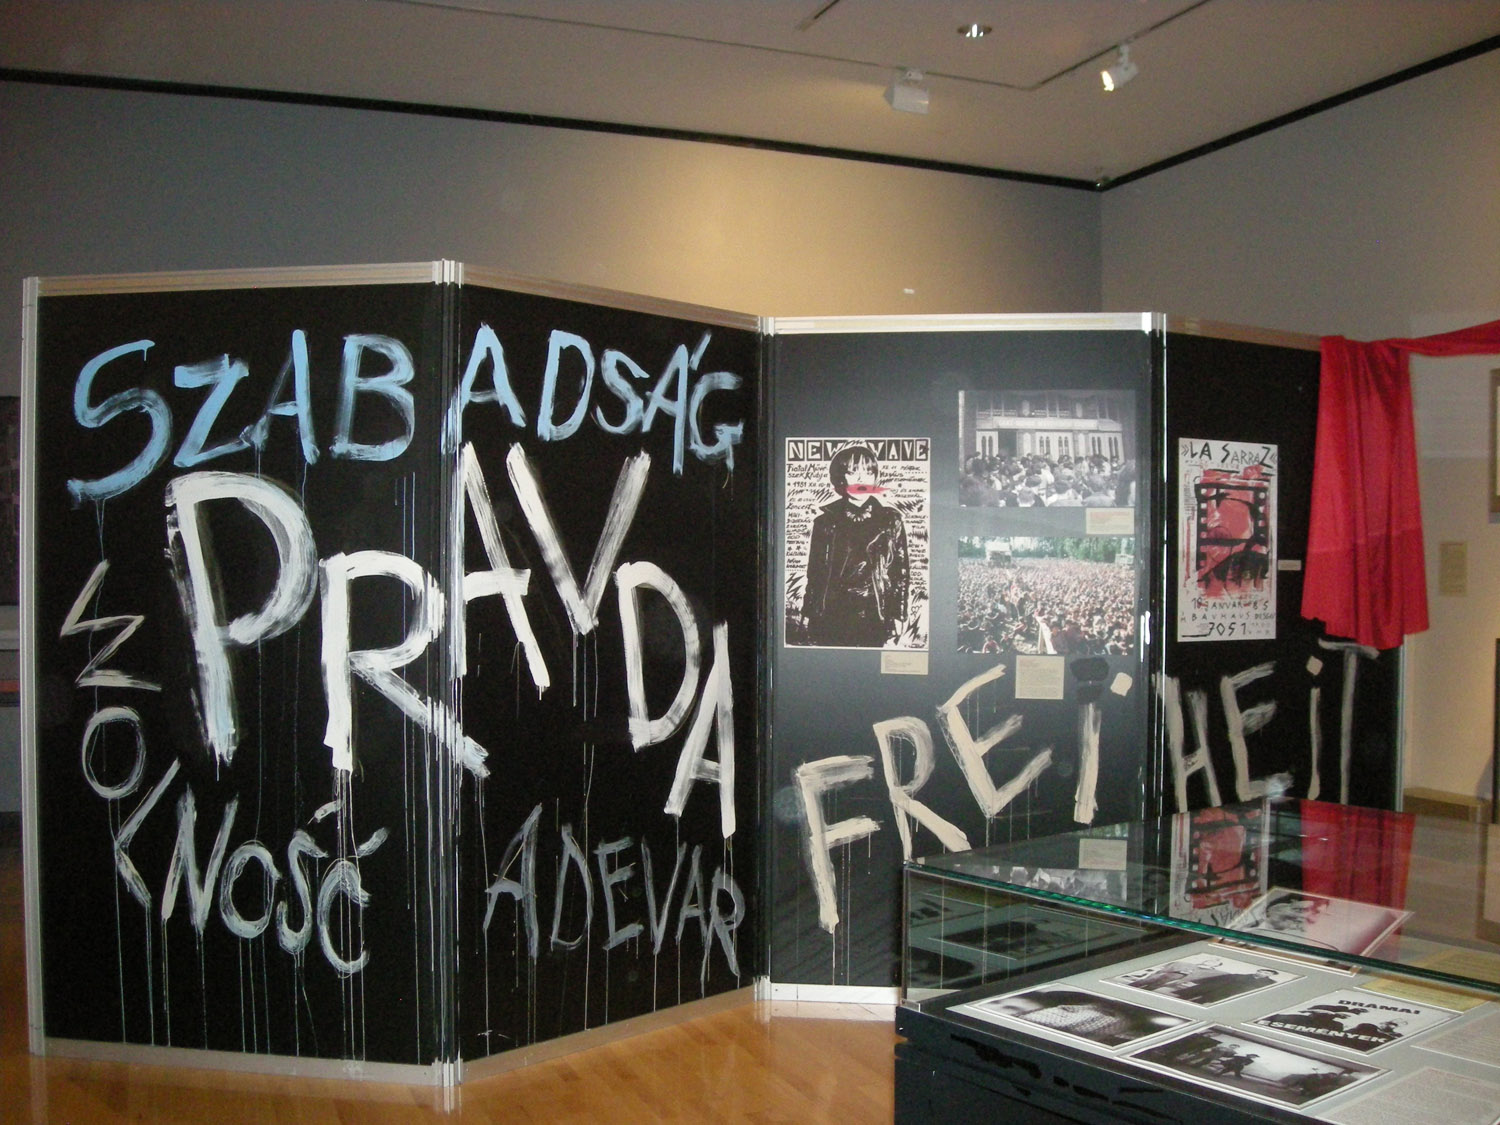 Exhibition view of Revolutionary Voices: Performing Arts in Central & Eastern Europe in the 1980s, The New York Public Library for the Performing Arts, 2009